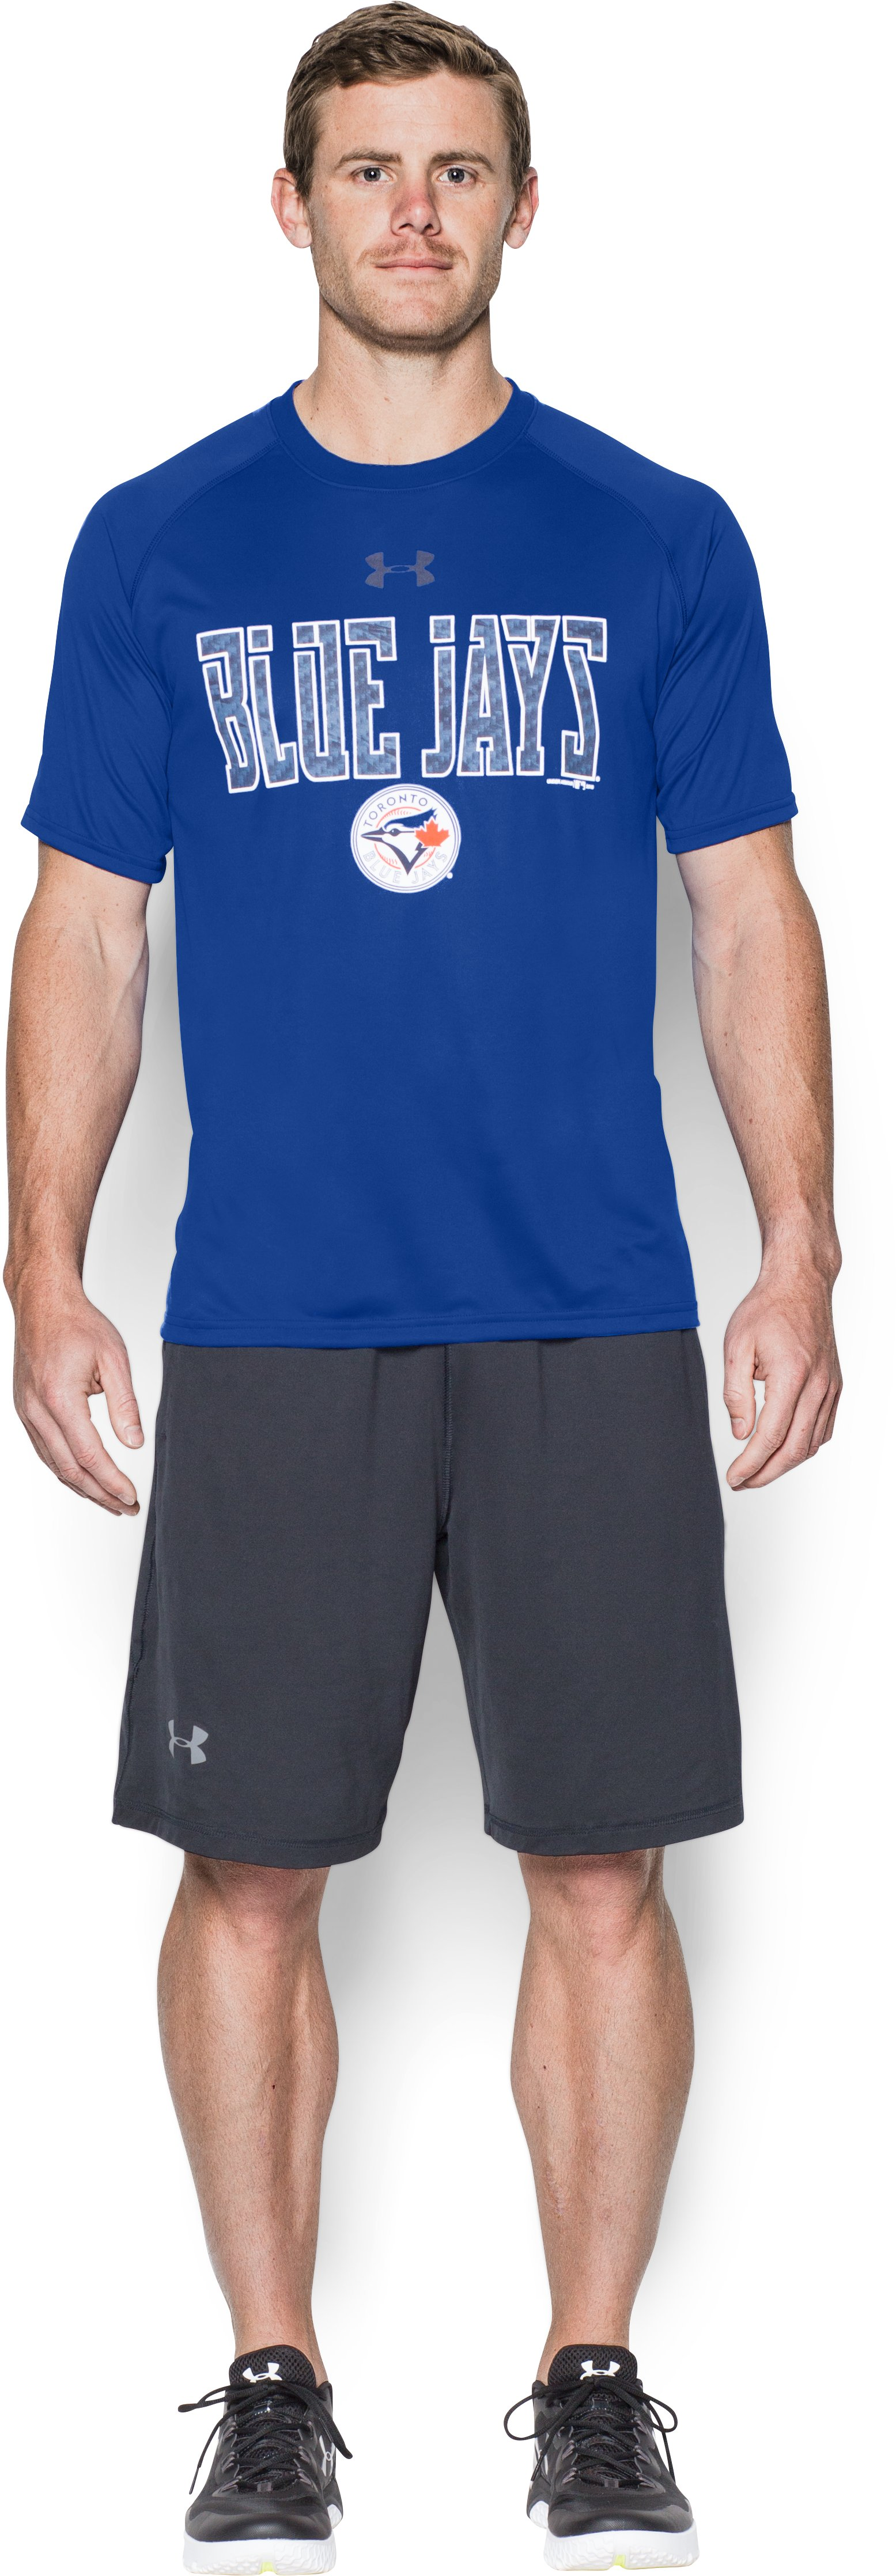 Men's Toronto Blue Jays Team Tech™ T-Shirt, Royal